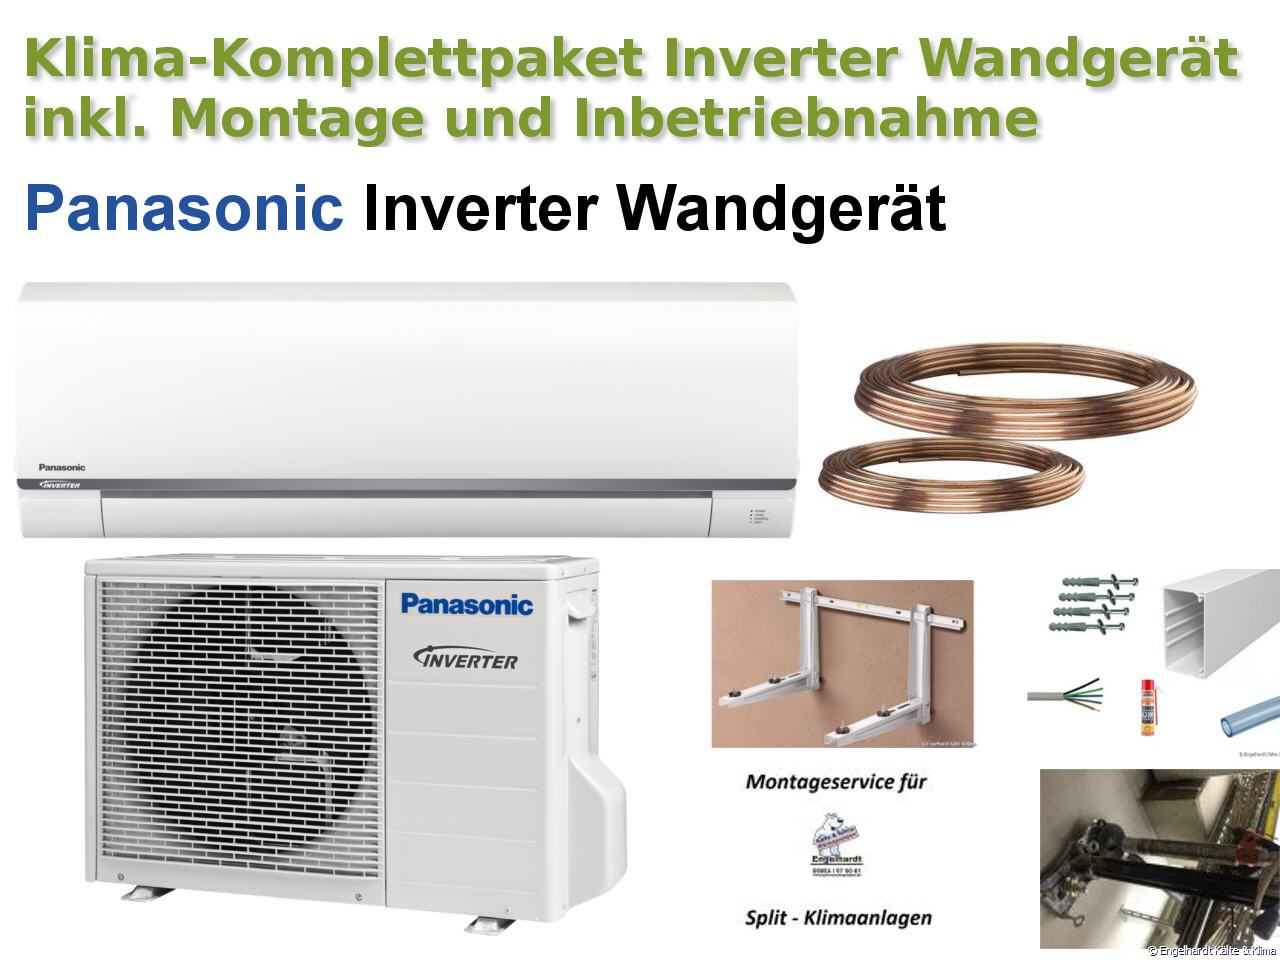 panasonic inverter wandklimaanlage mit montagematerial. Black Bedroom Furniture Sets. Home Design Ideas